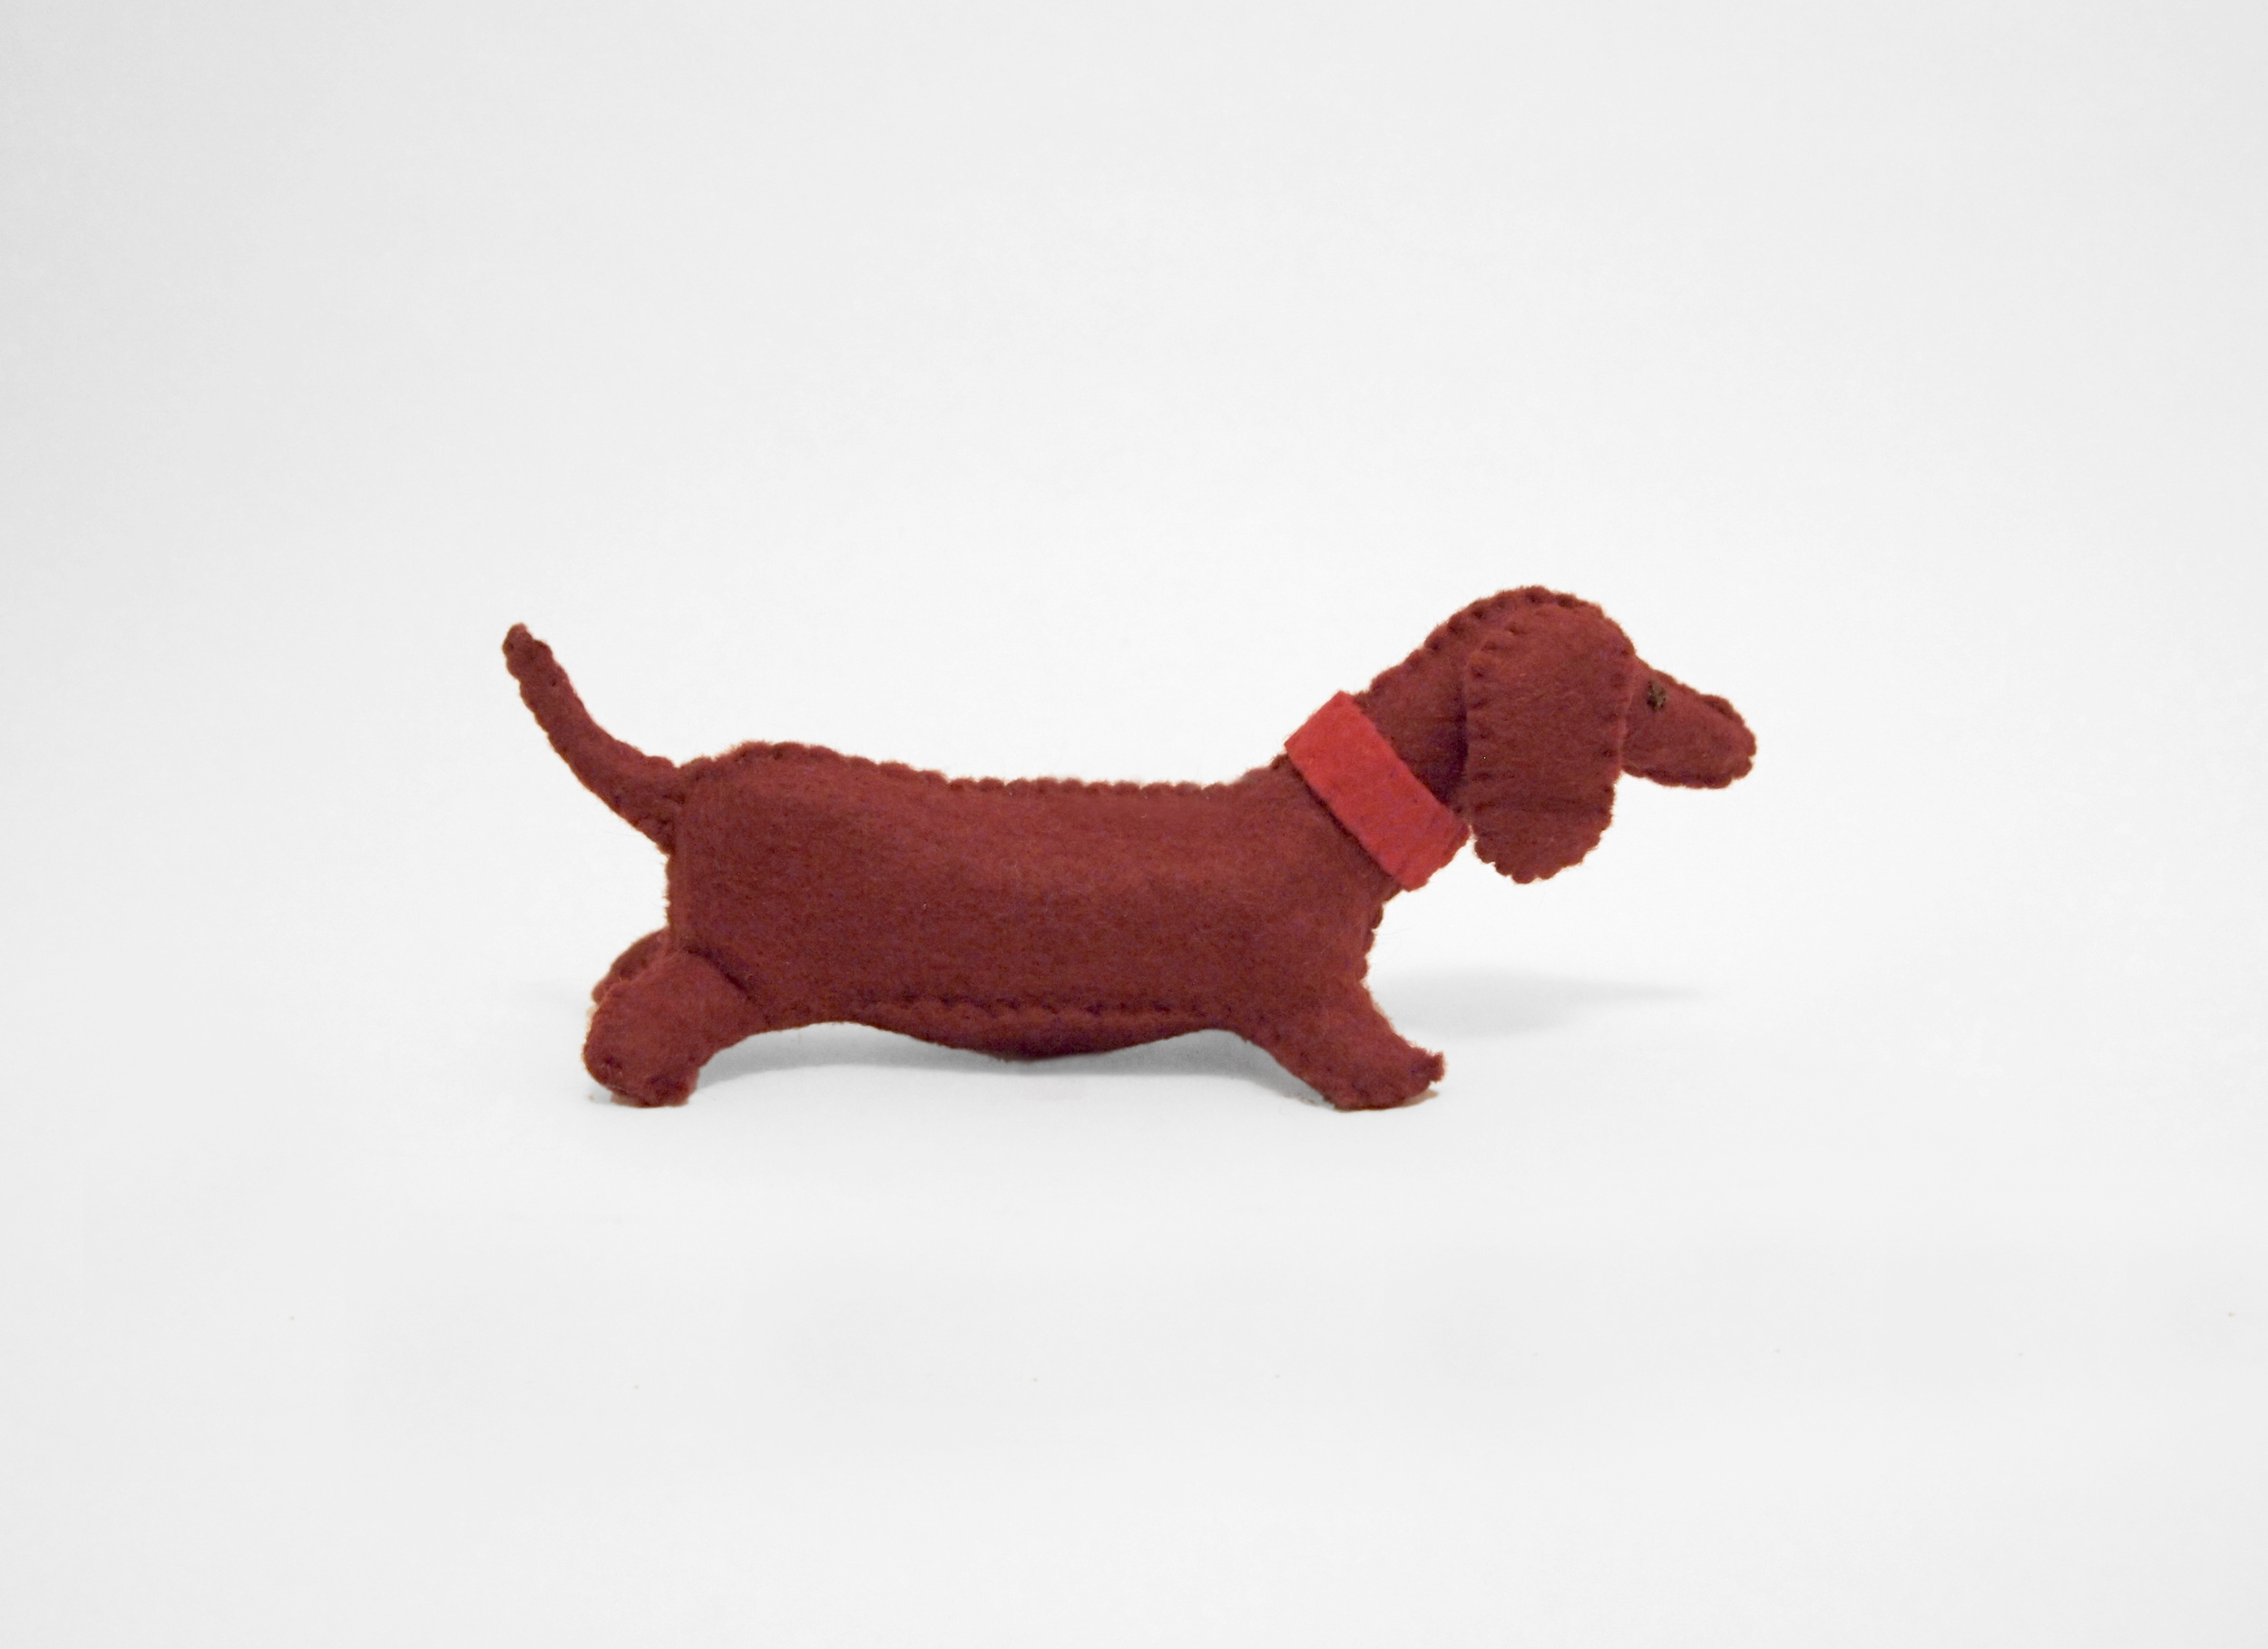 wiener felt dog portrait